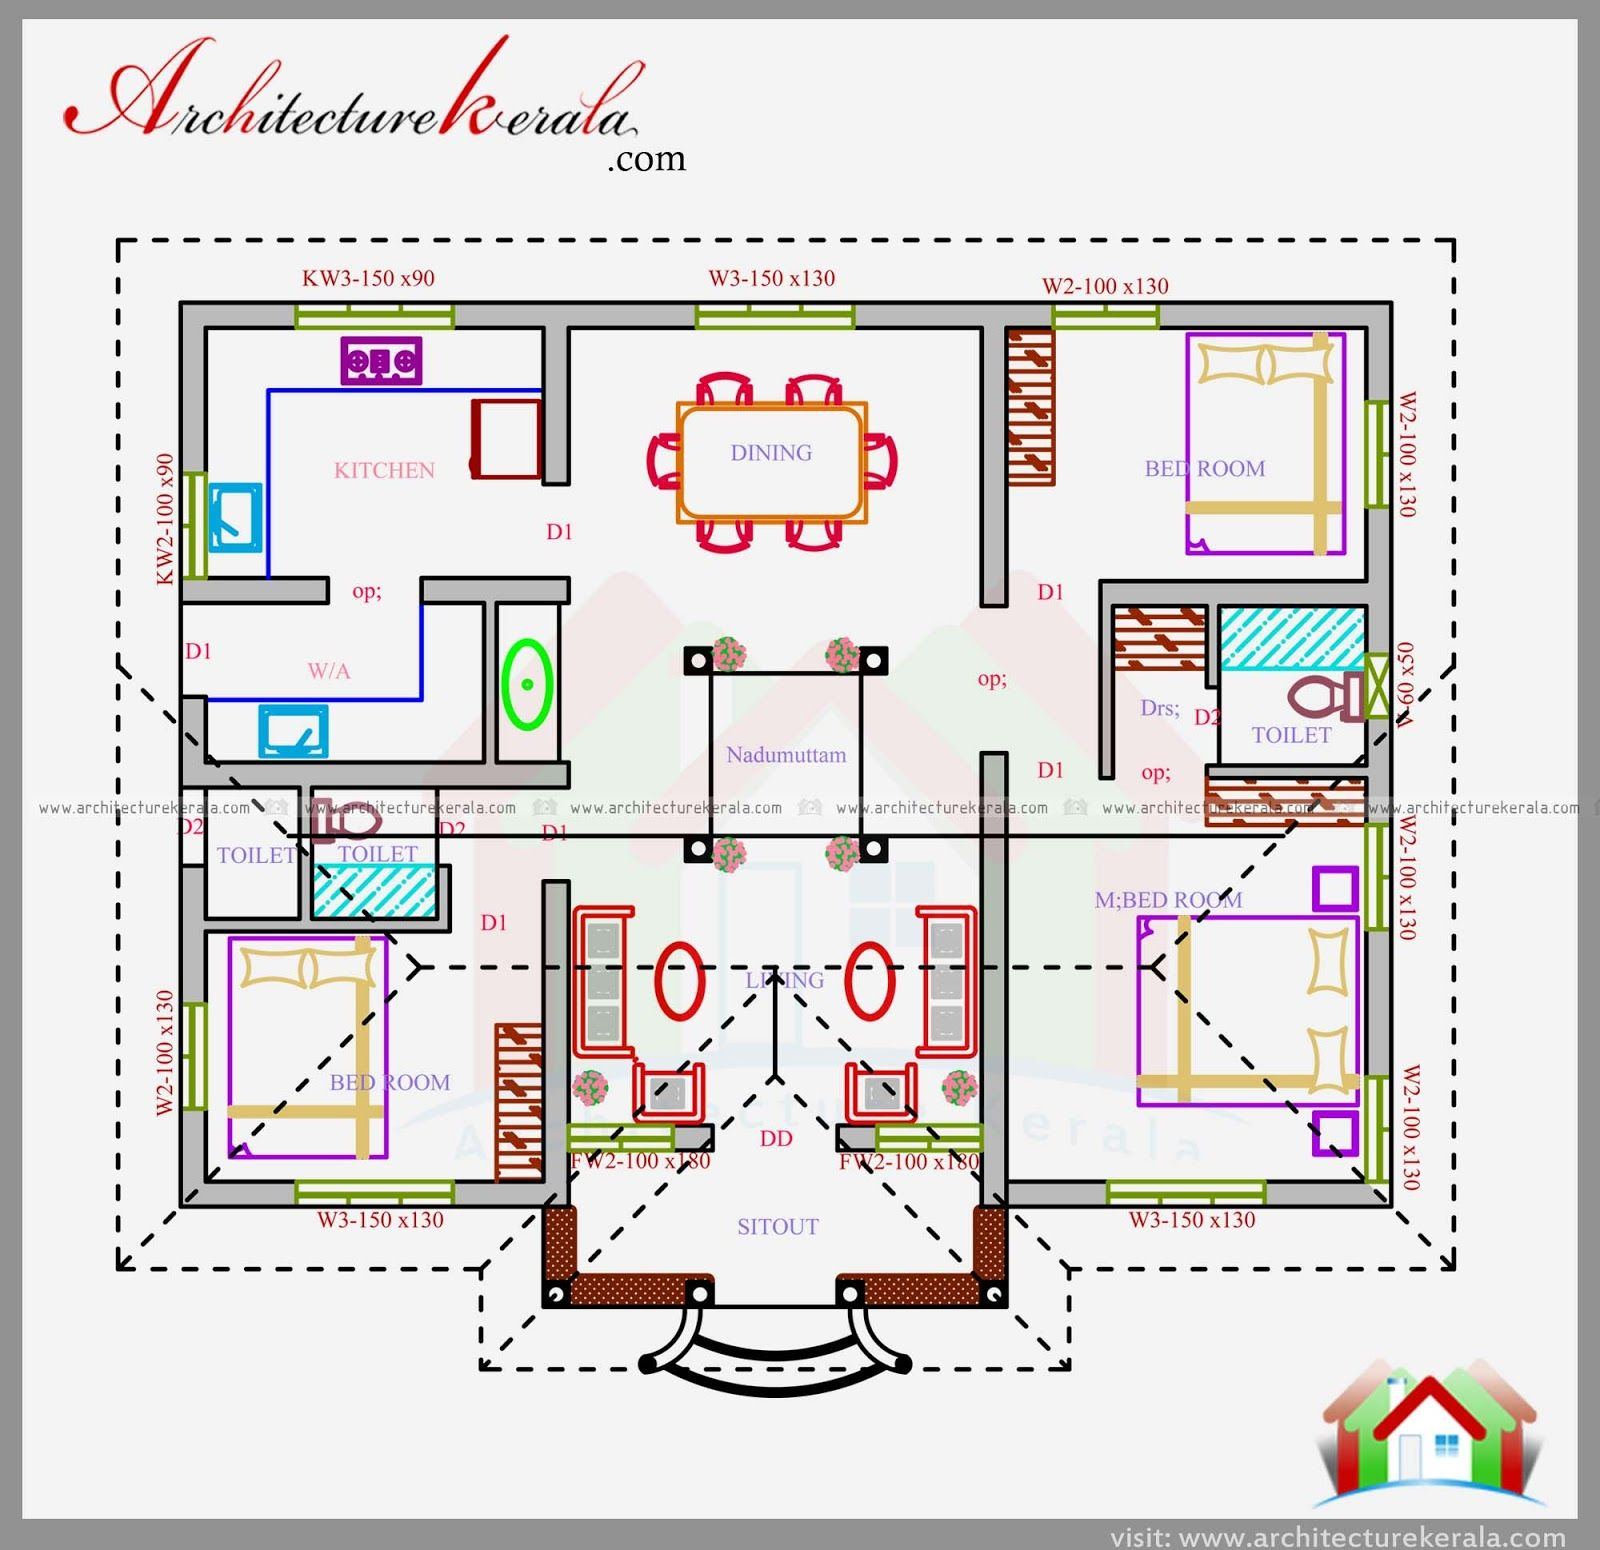 Three bedrooms in 1200 square feet kerala house plan for Indian vastu home plans and designs